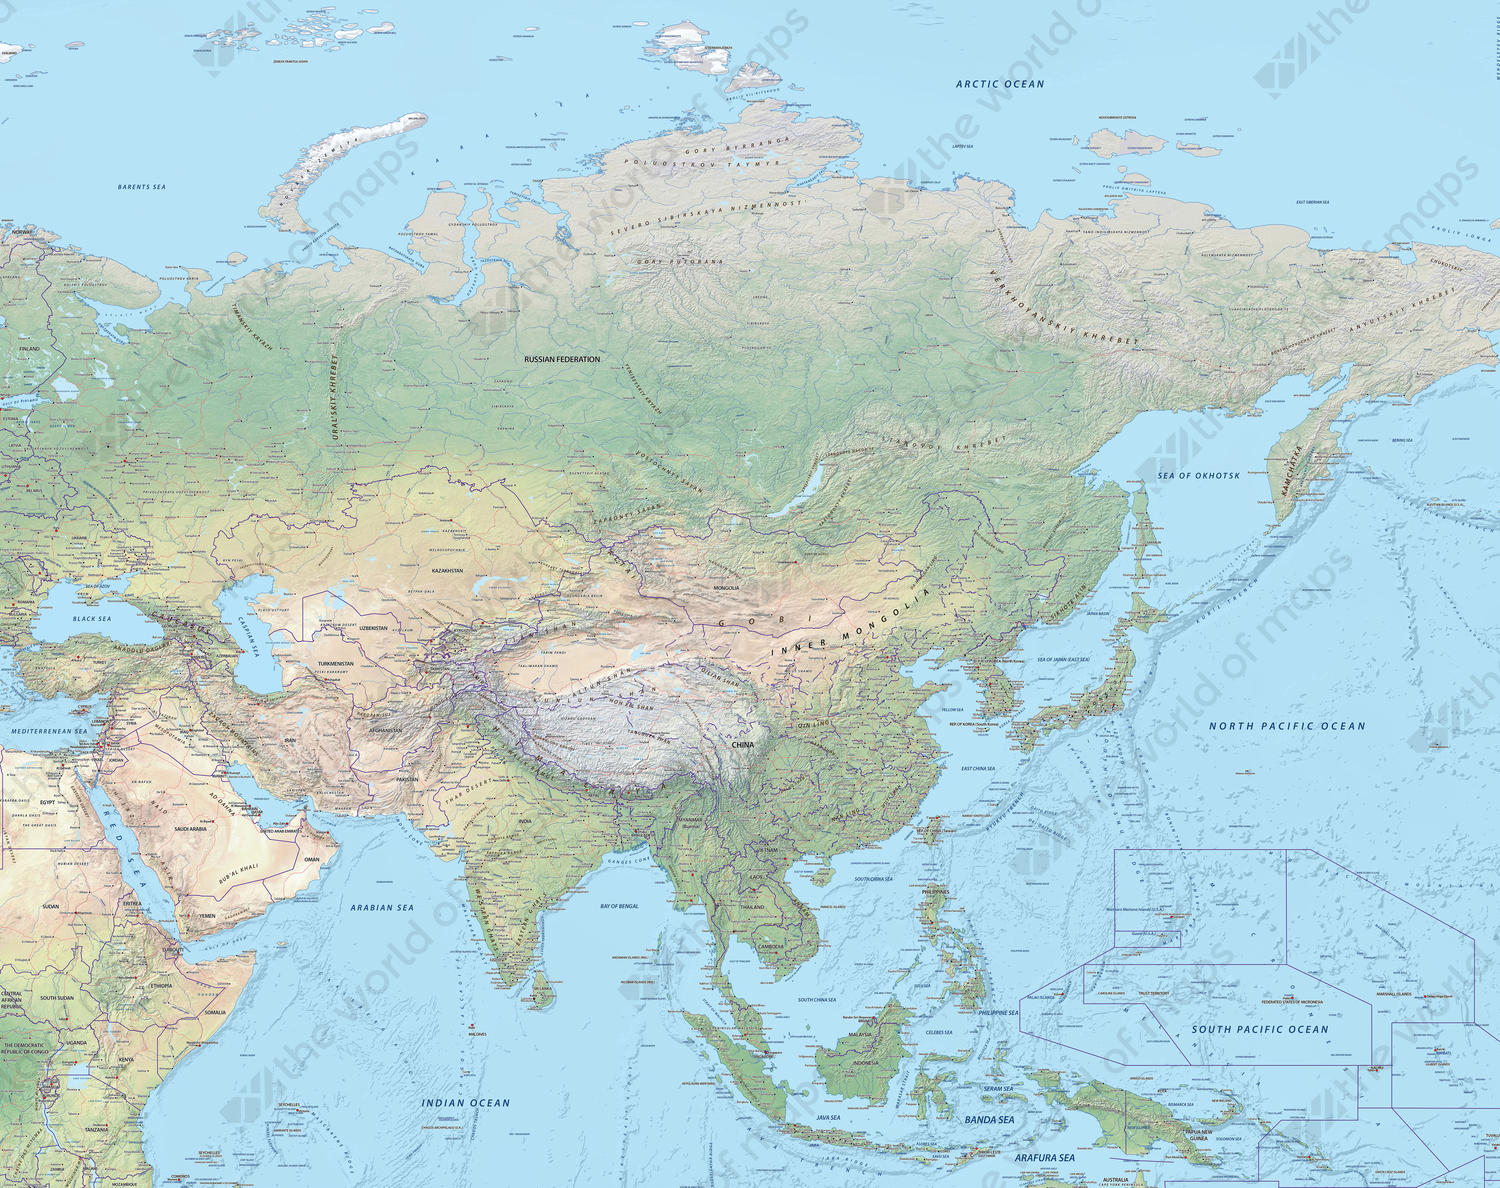 Complete Map Of Asia.Digital Map Asia Physical 637 The World Of Maps Com